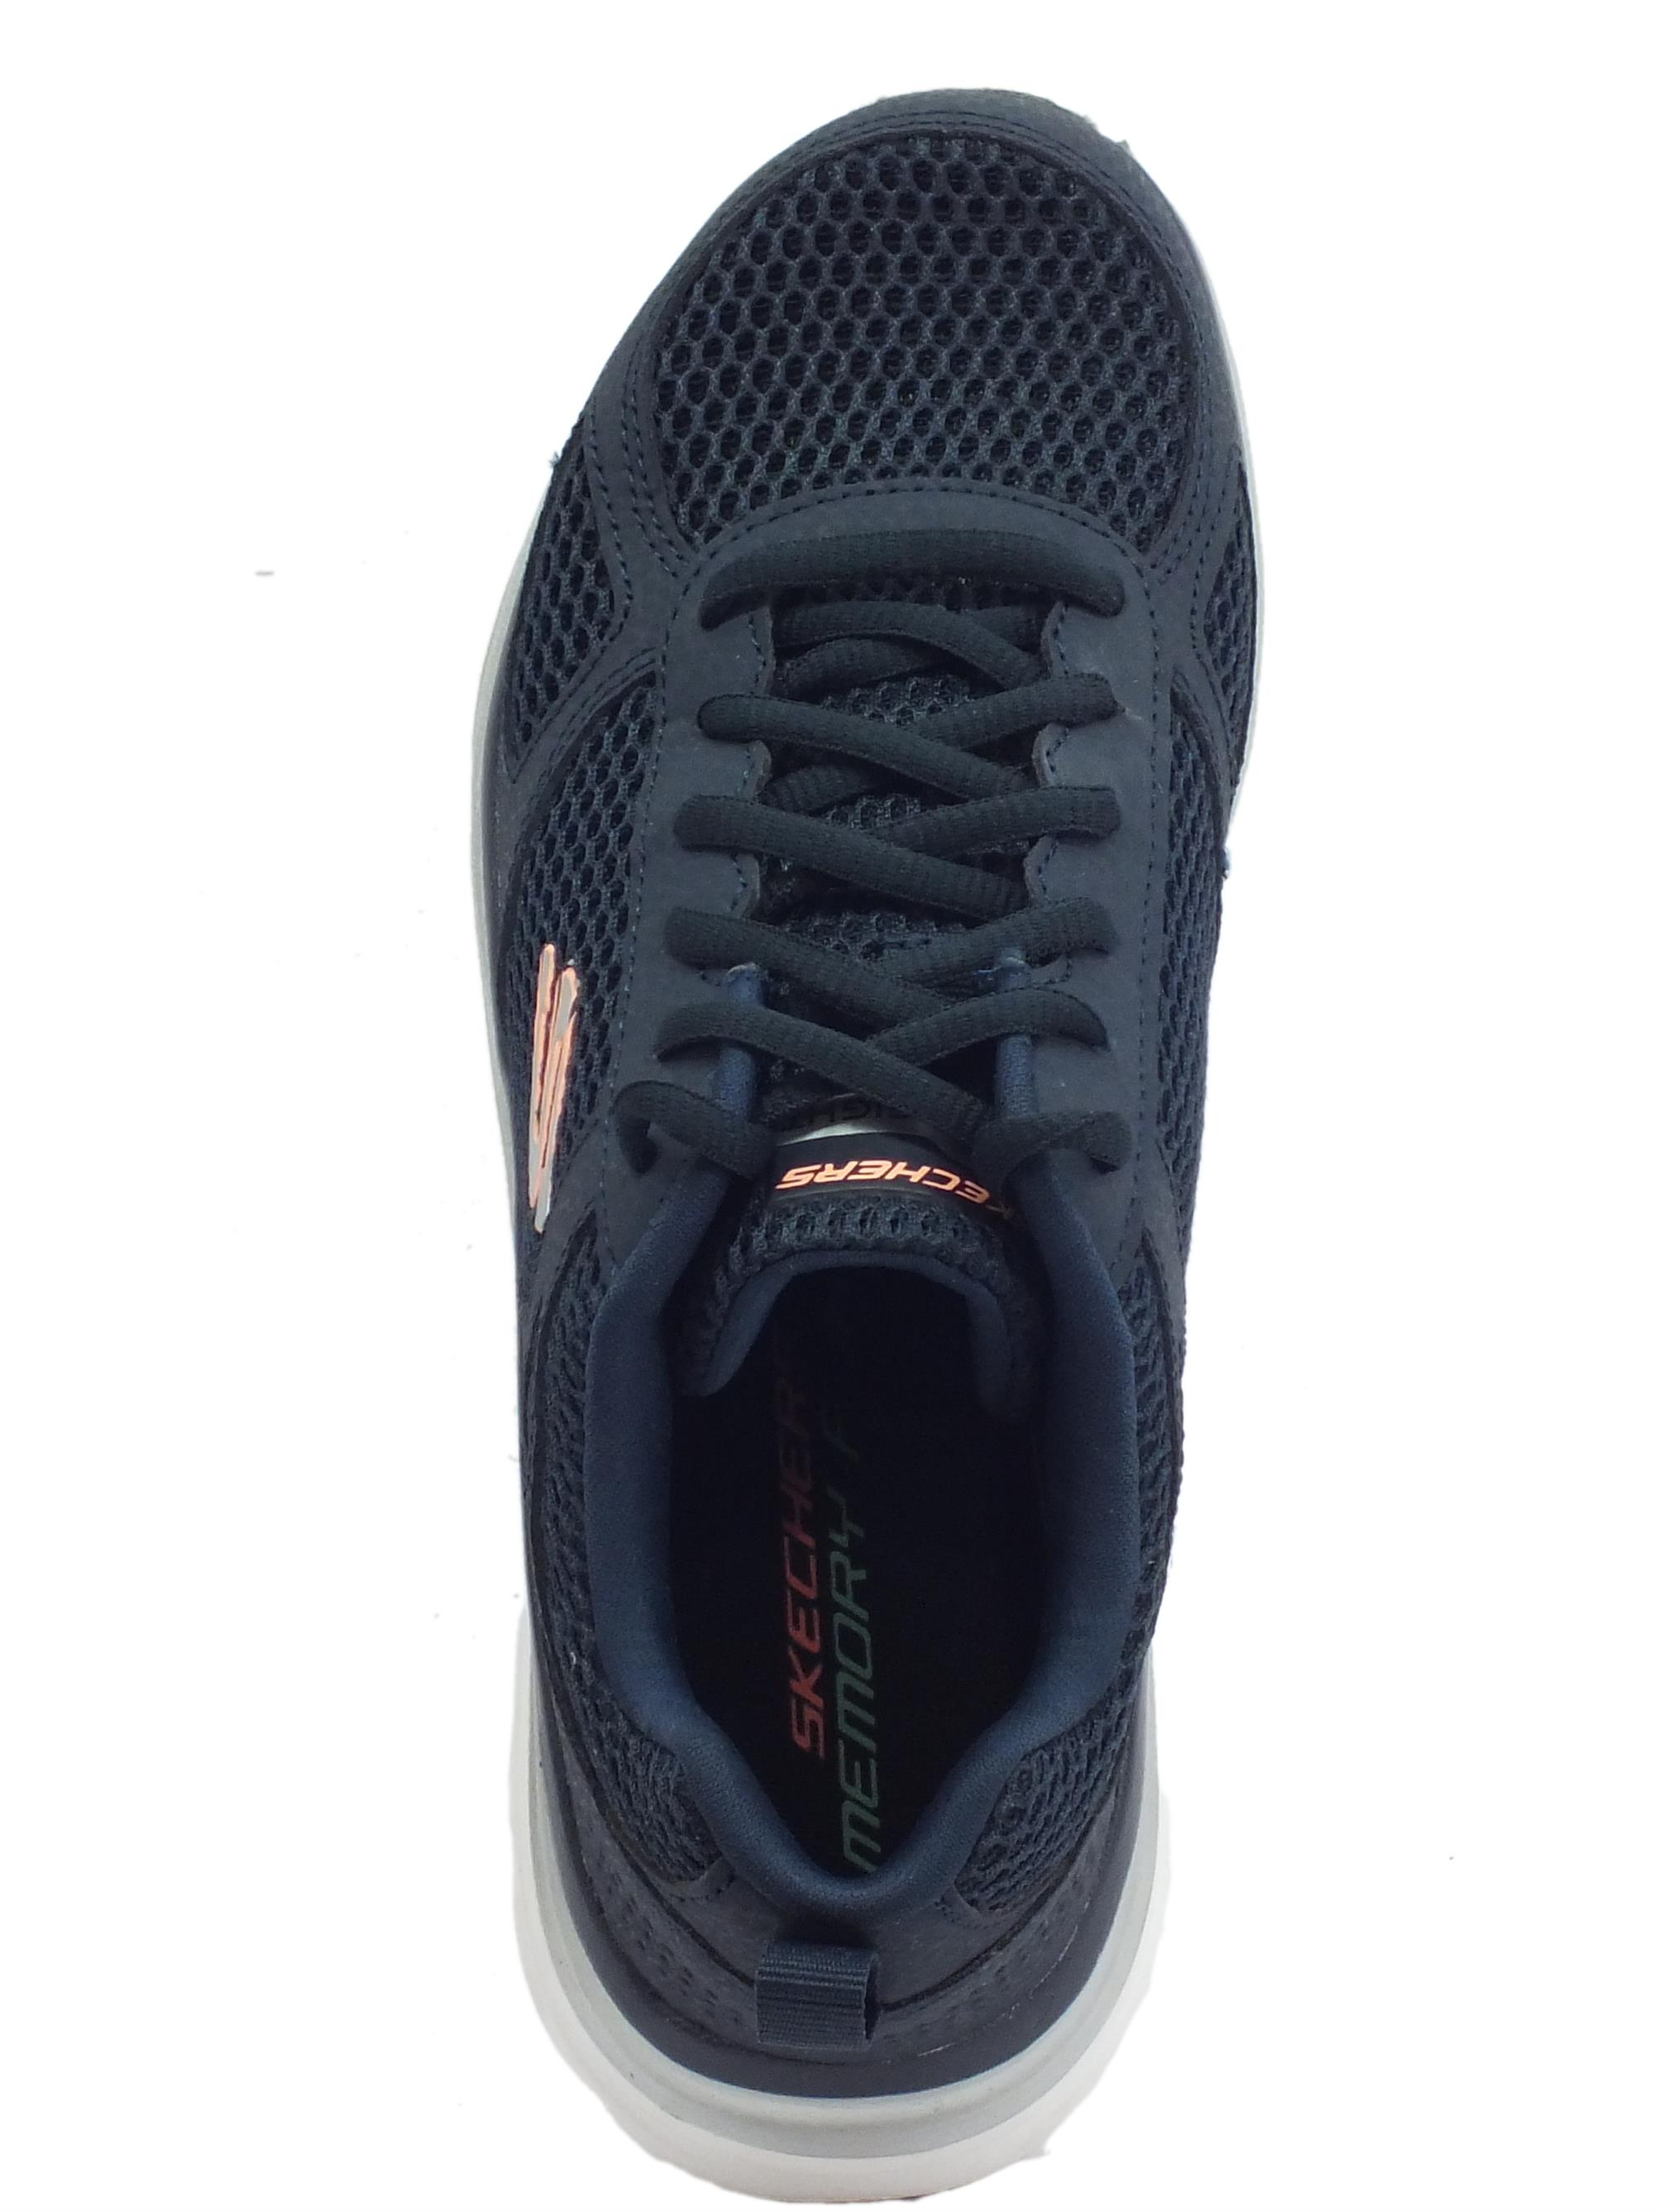 ... Skechers Fashion-fit Perfect Mate scarpe sportive per donna blu con  memory foam ef3075e5ecd